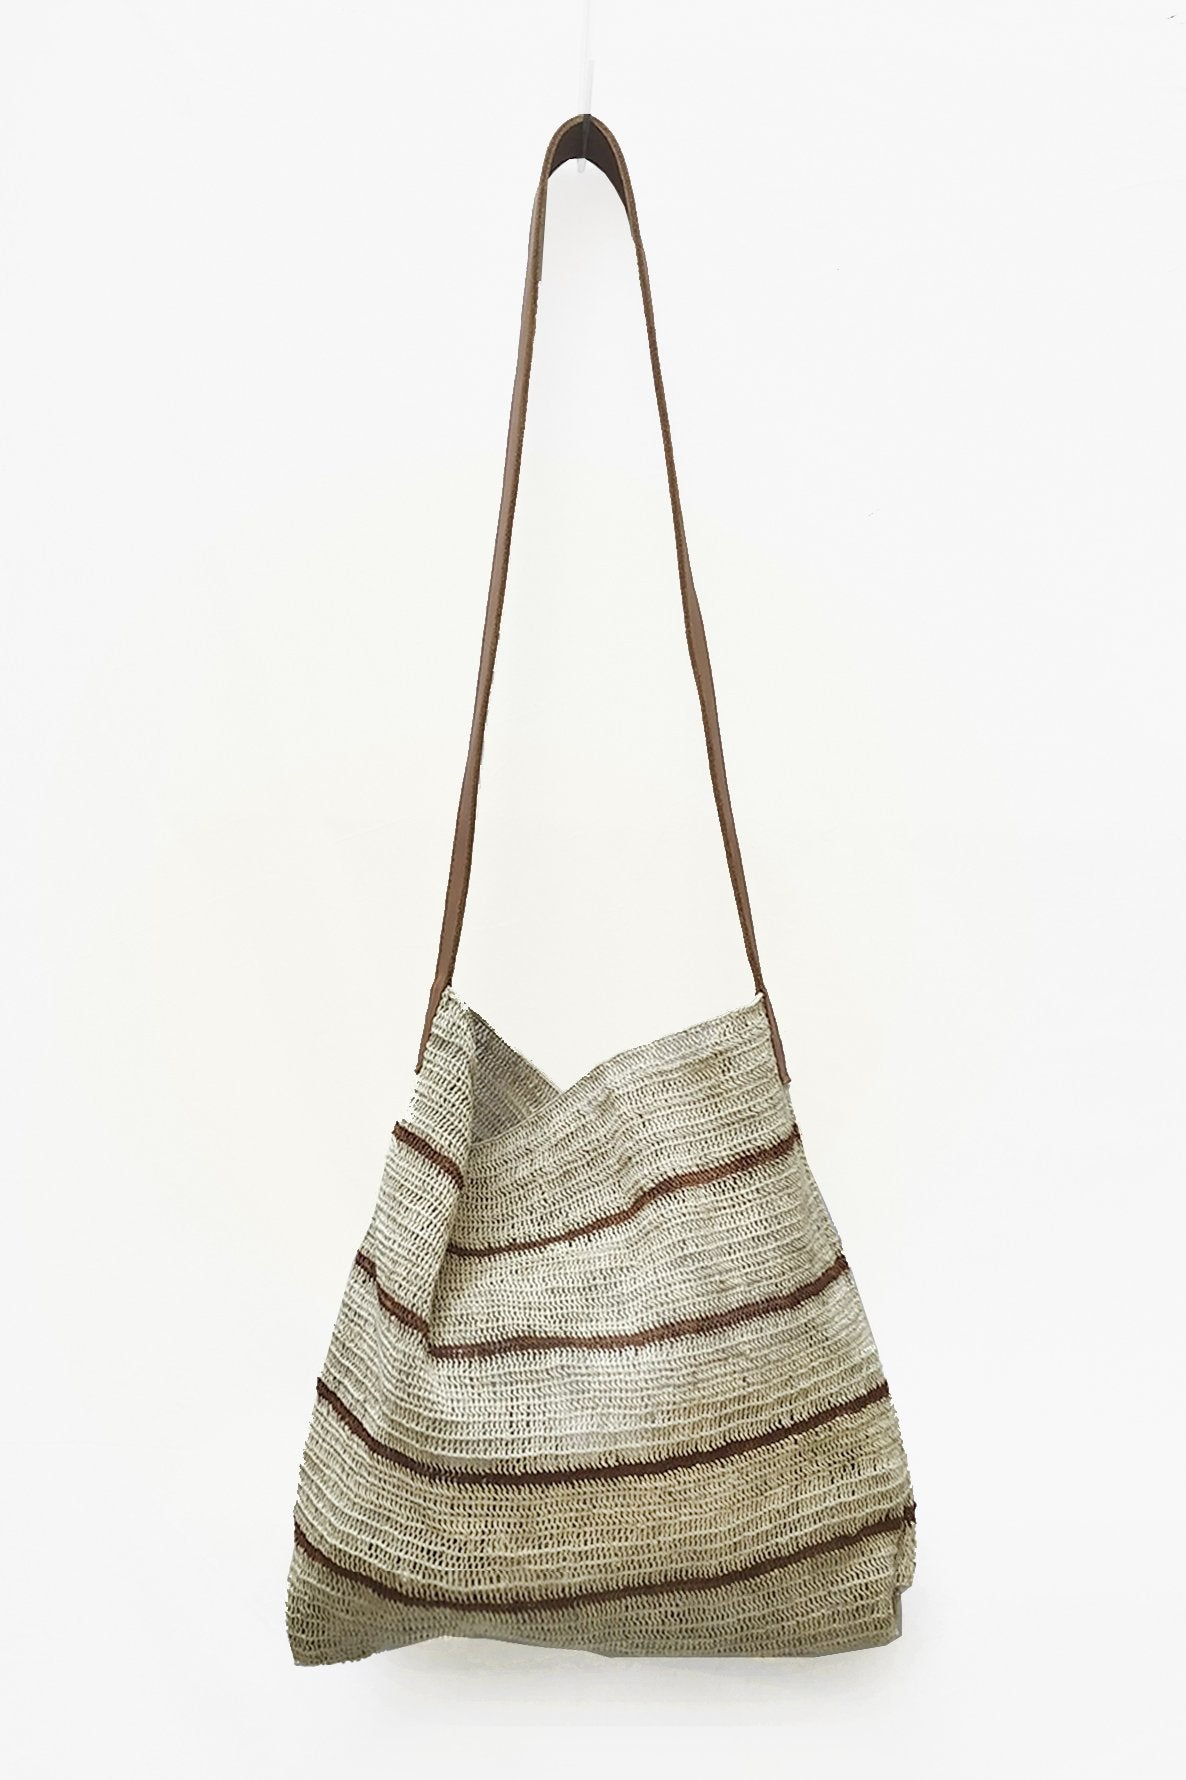 Natural White Chaguar Purse with Thin Brown Stripes and Leather Strap.